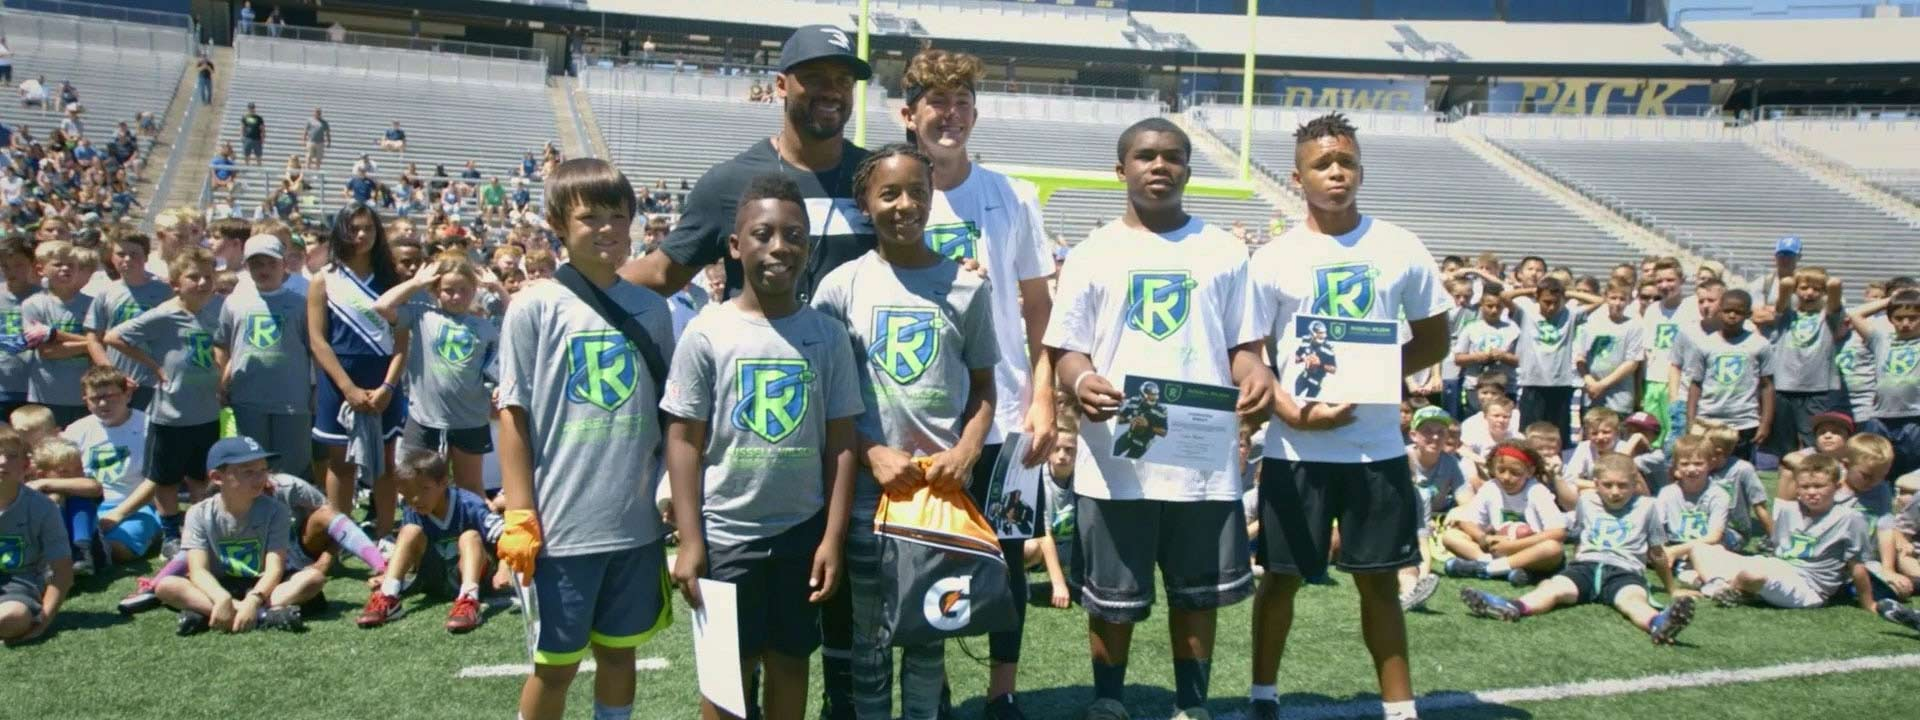 Russell Wilson motivates and empowers today's youth to be tomorrow's leaders through the Why Not You Foundation.